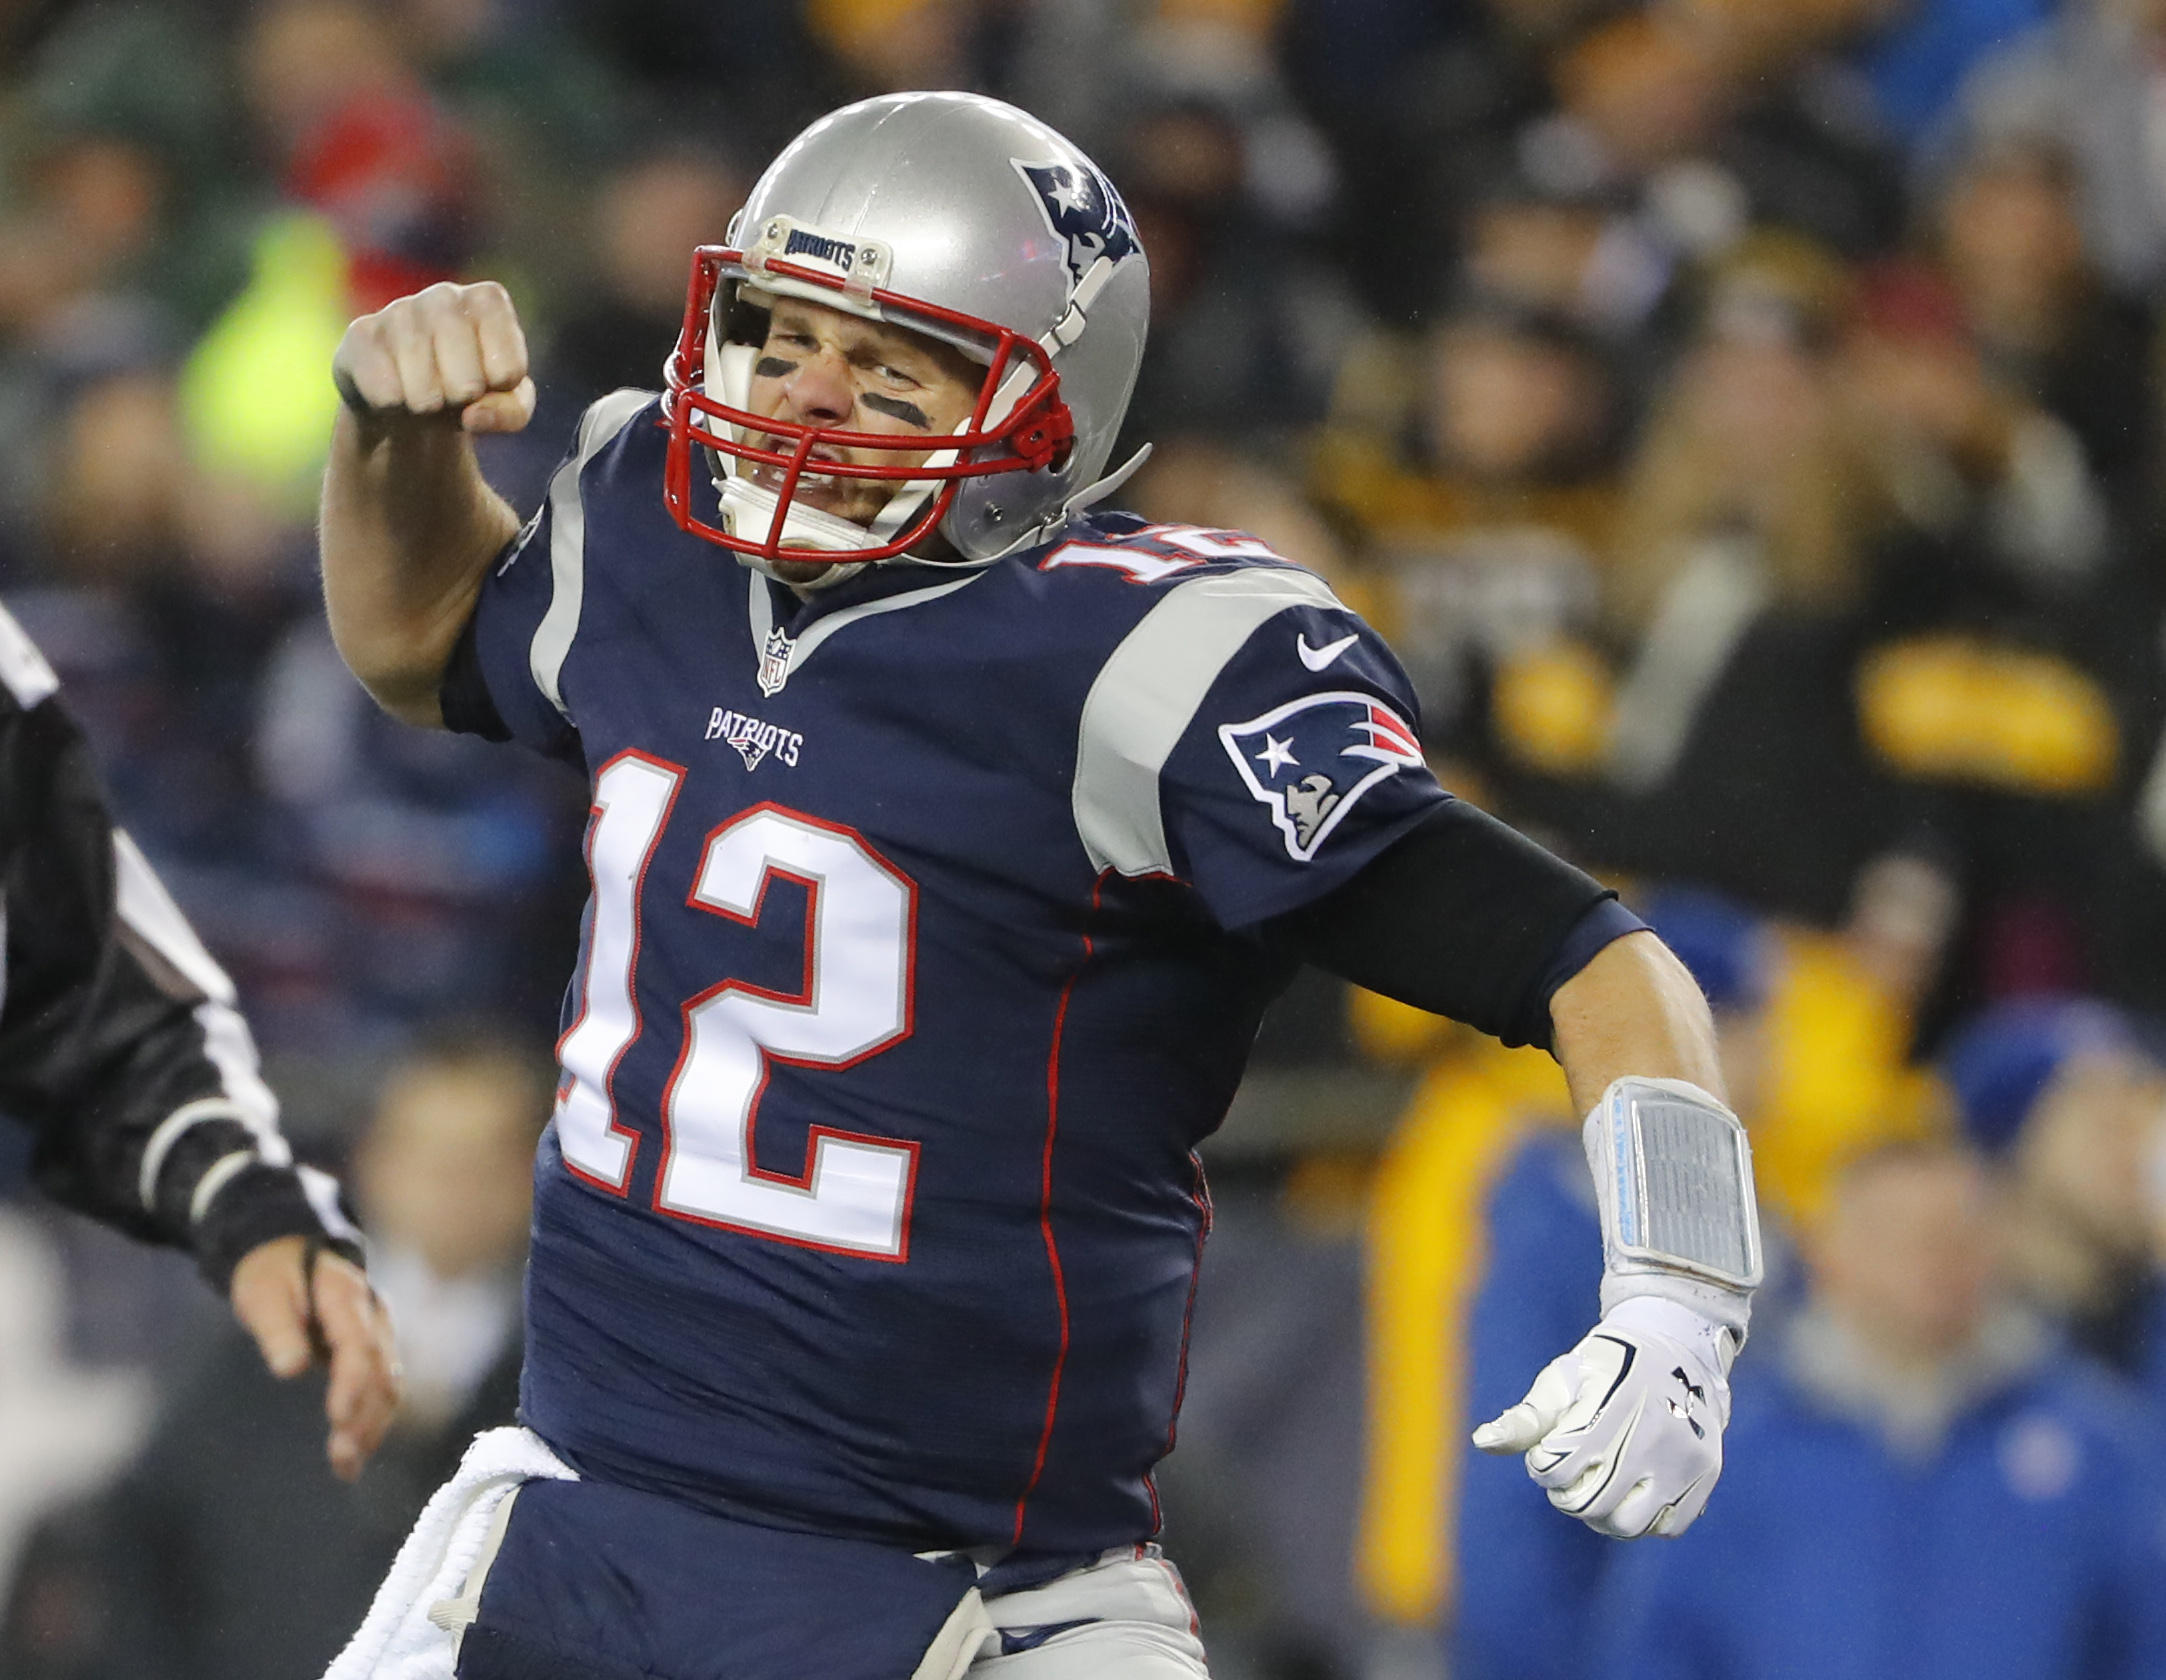 97c97e6a8 Tom Brady leads the Patriots back to Super Bowl with 36-17 rout of  Pittsburgh